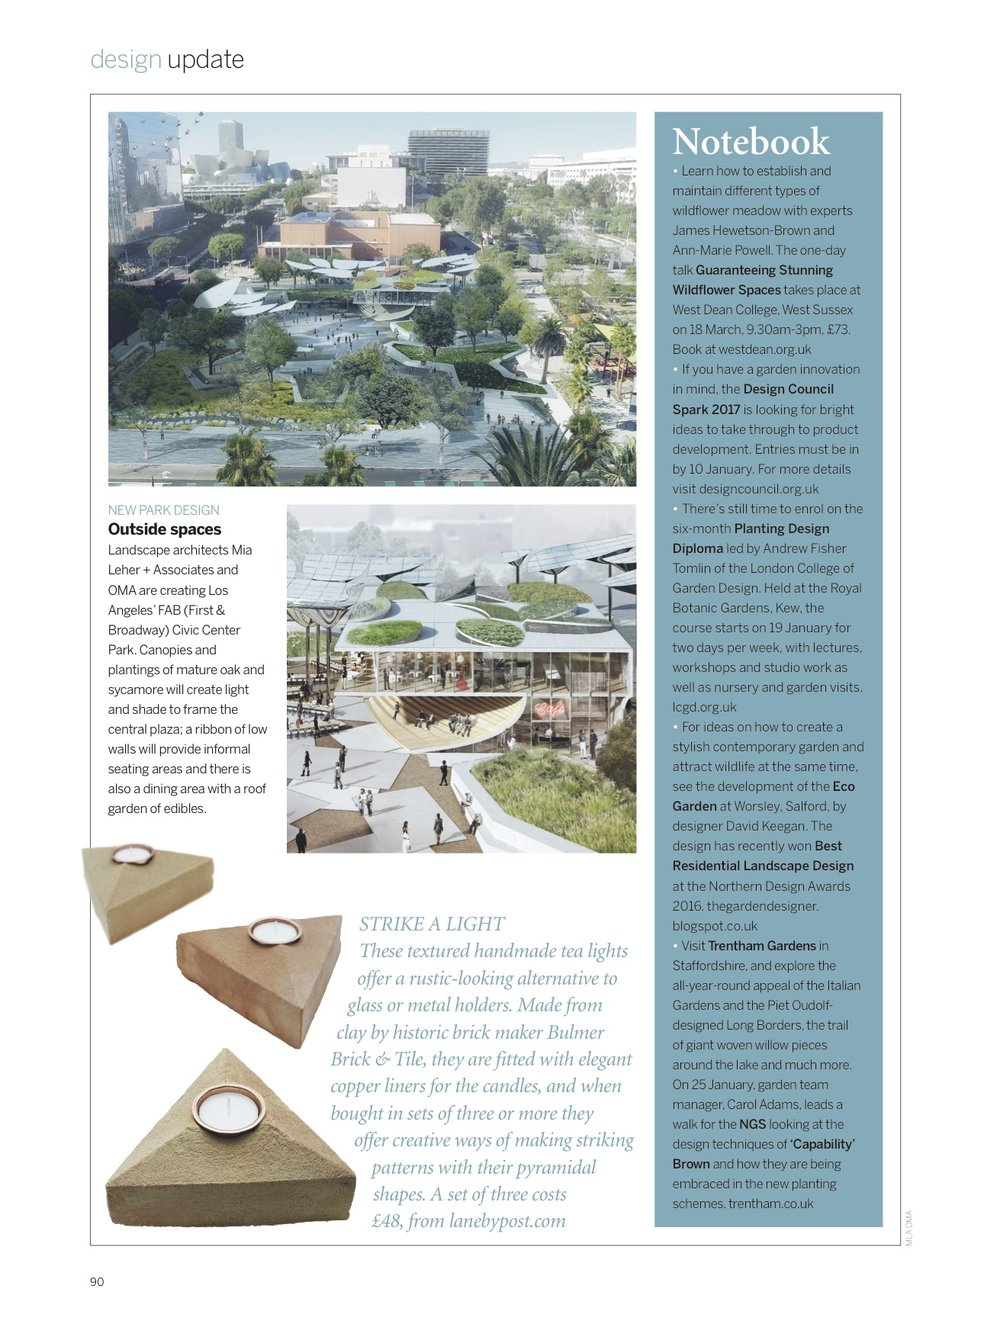 Gardens Illustrated - Design Update, February 2017, Lane   Sand Cast Brick Tea Light Holders